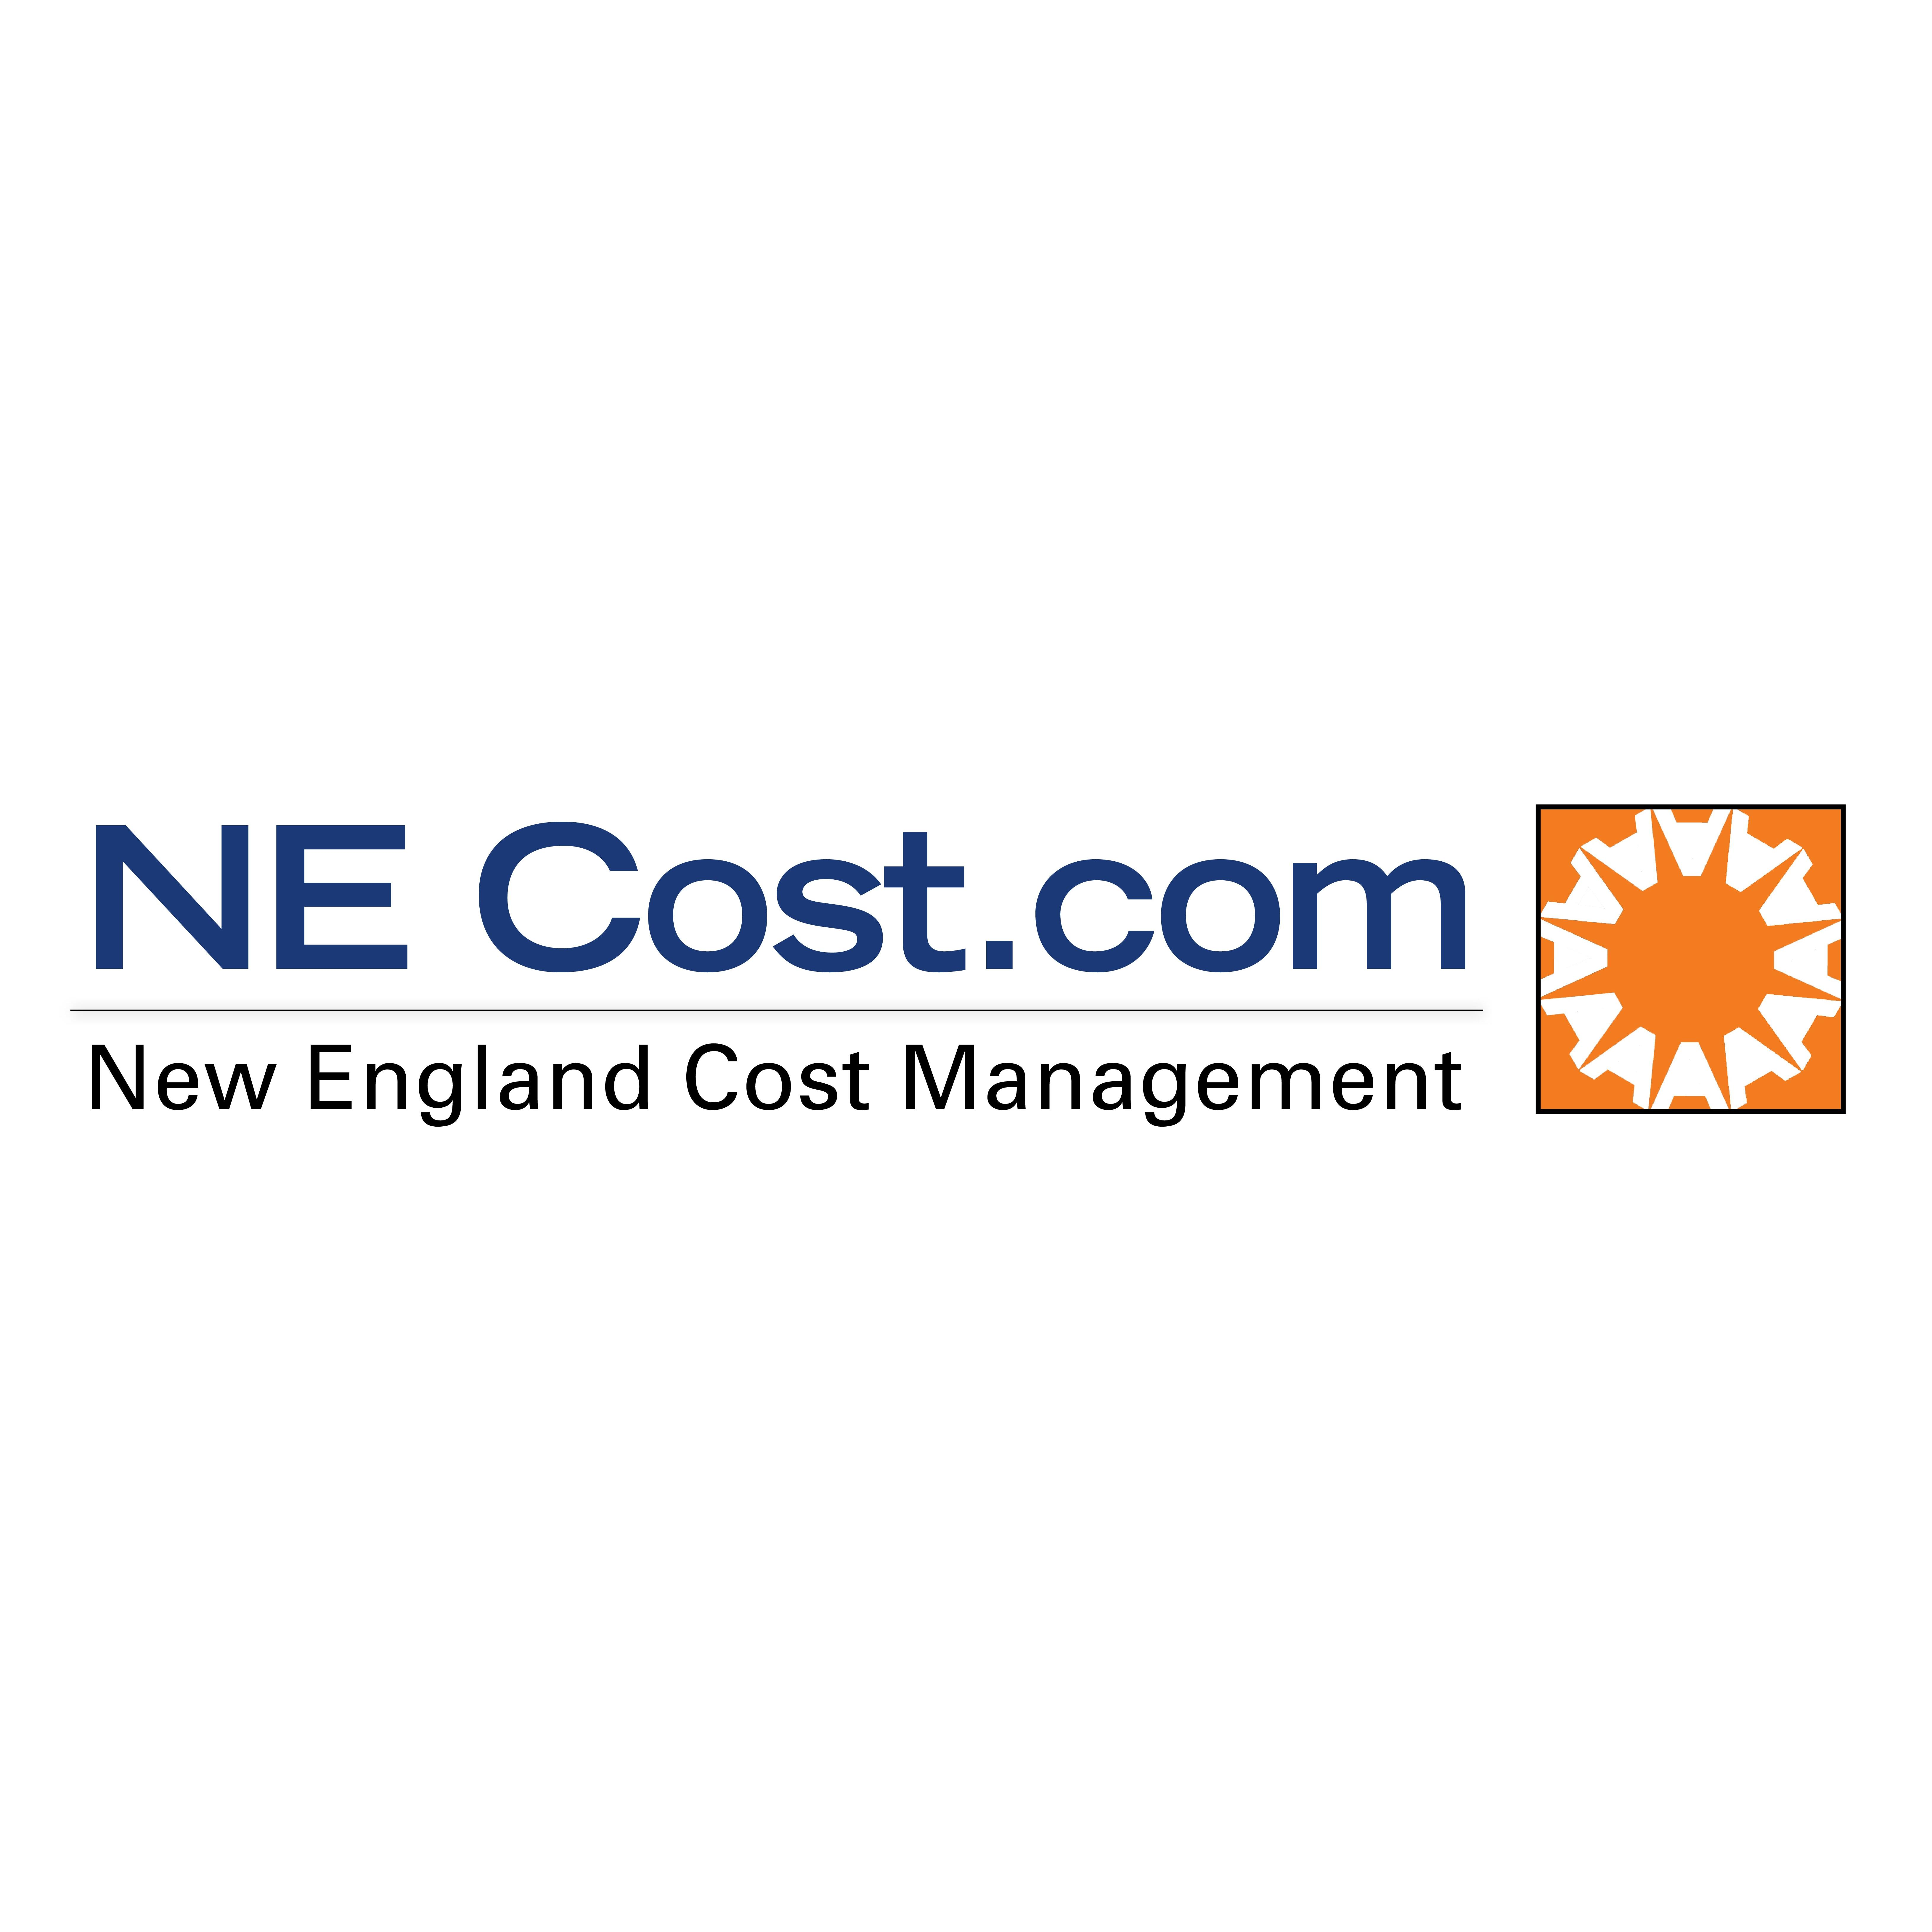 New England Cost management